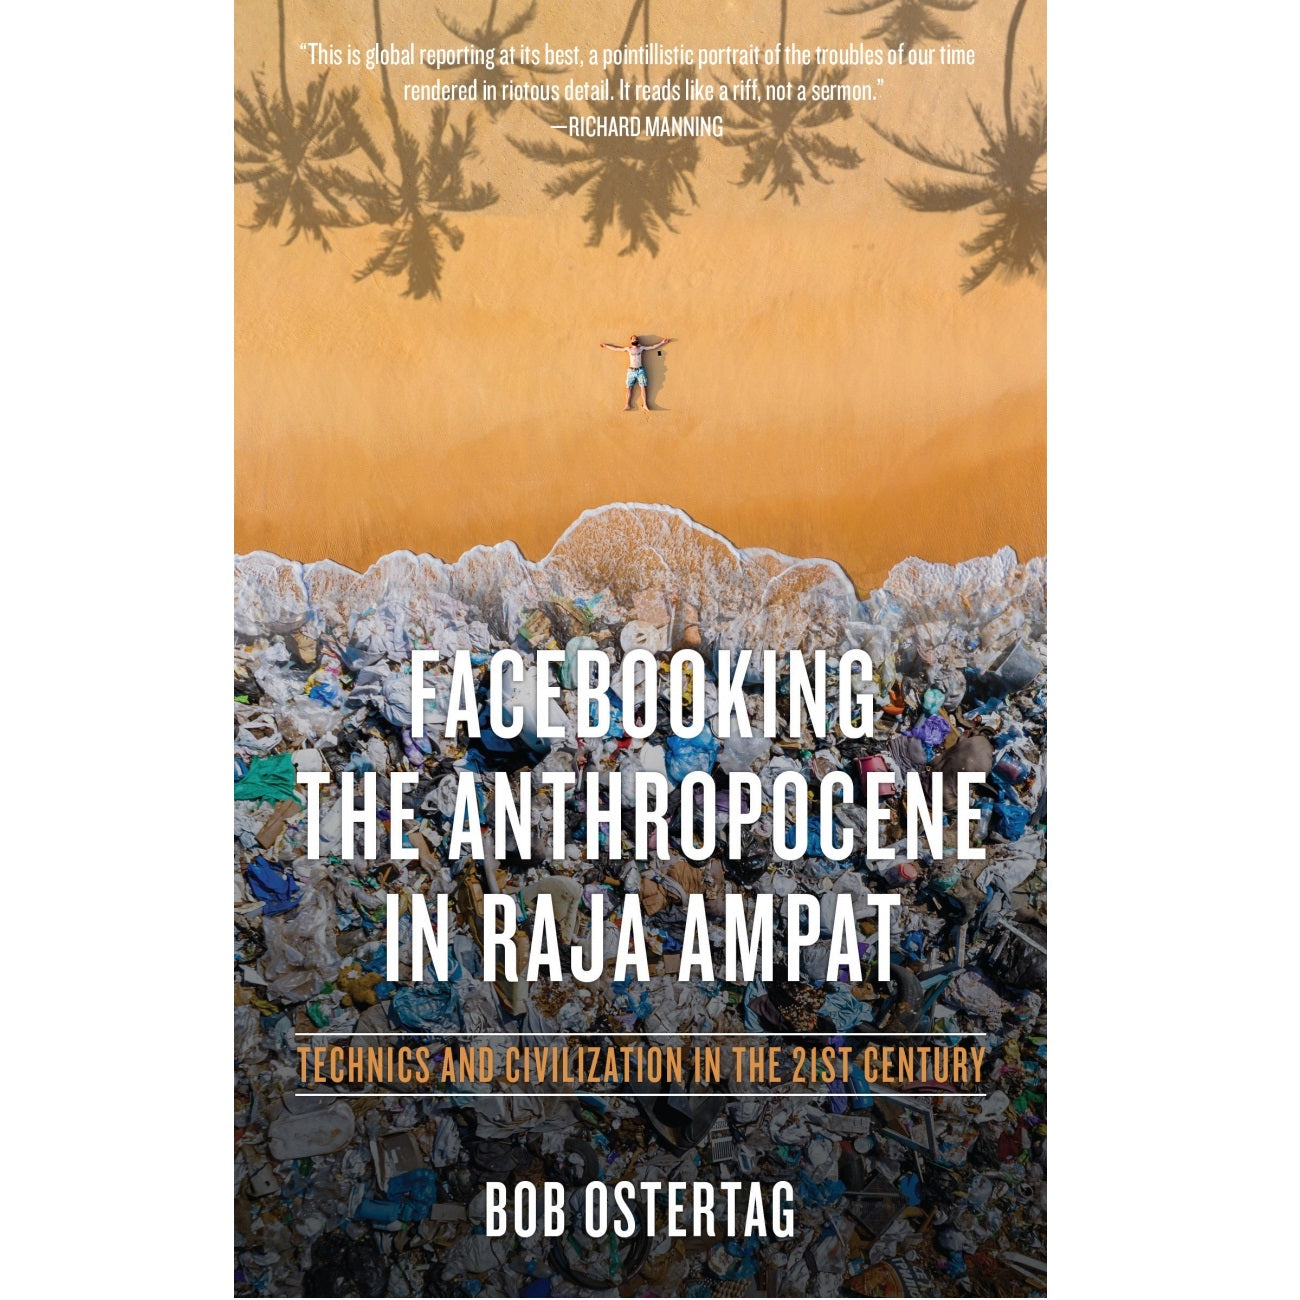 Facebooking the Anthropocene in Raja Ampat: Technics and Civilization in the 21st Century - Book